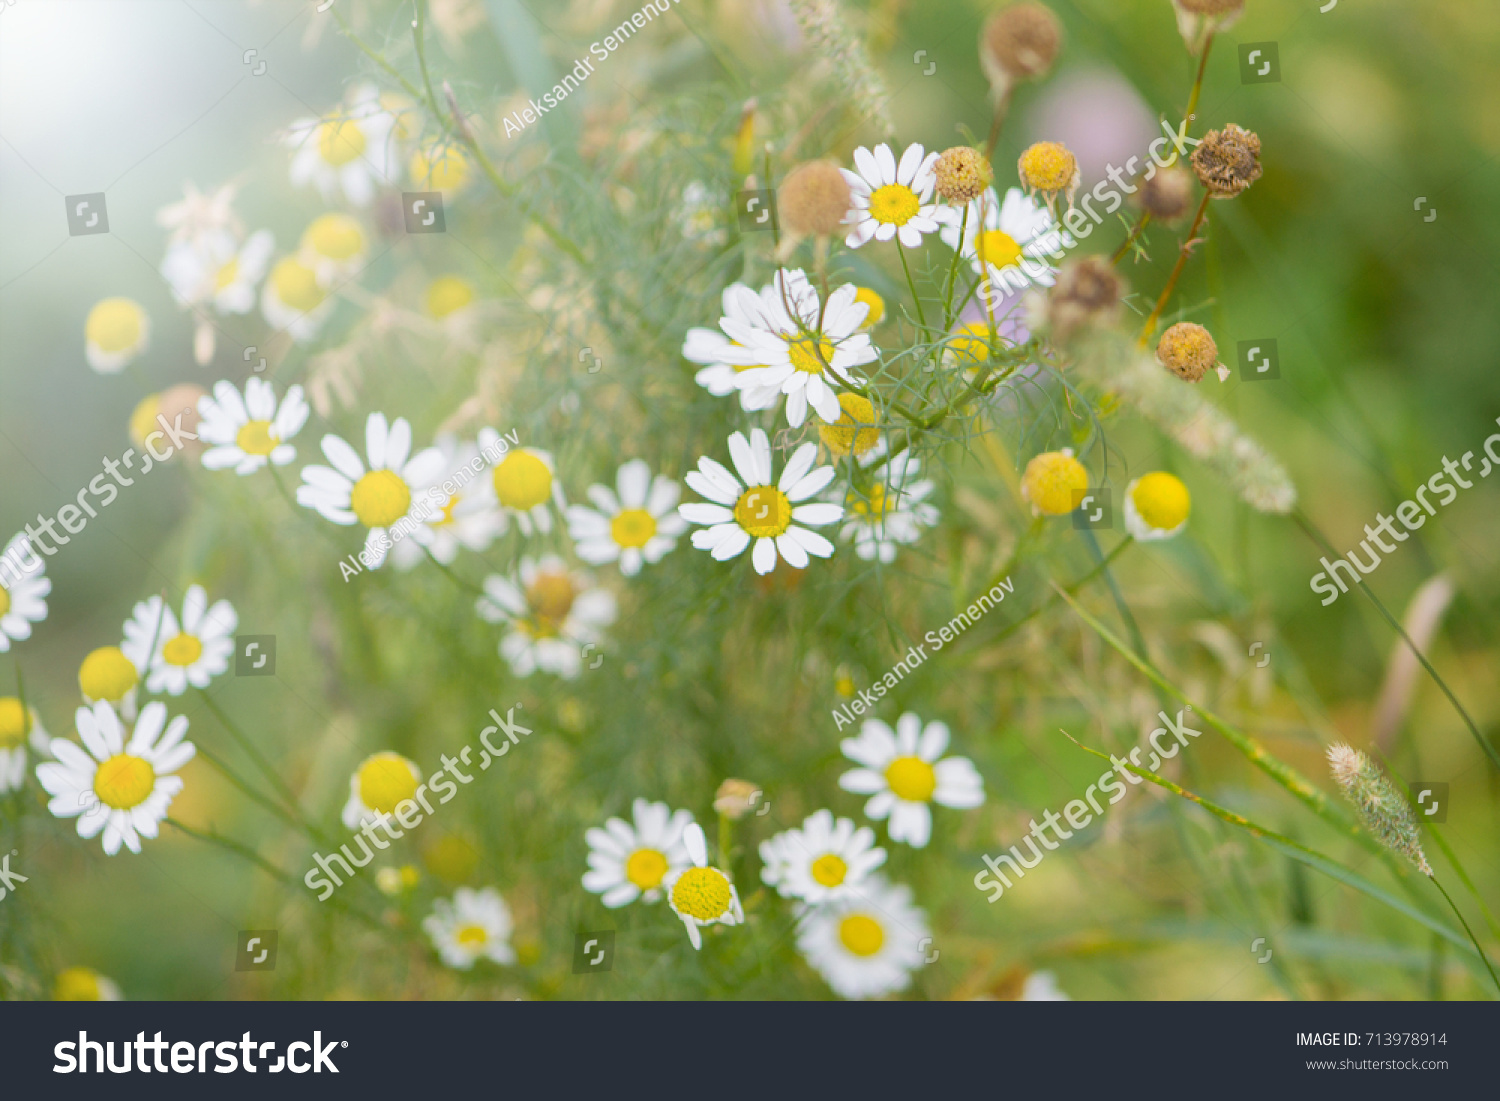 Camomiles Close Up Flower With White Petals And Green Background